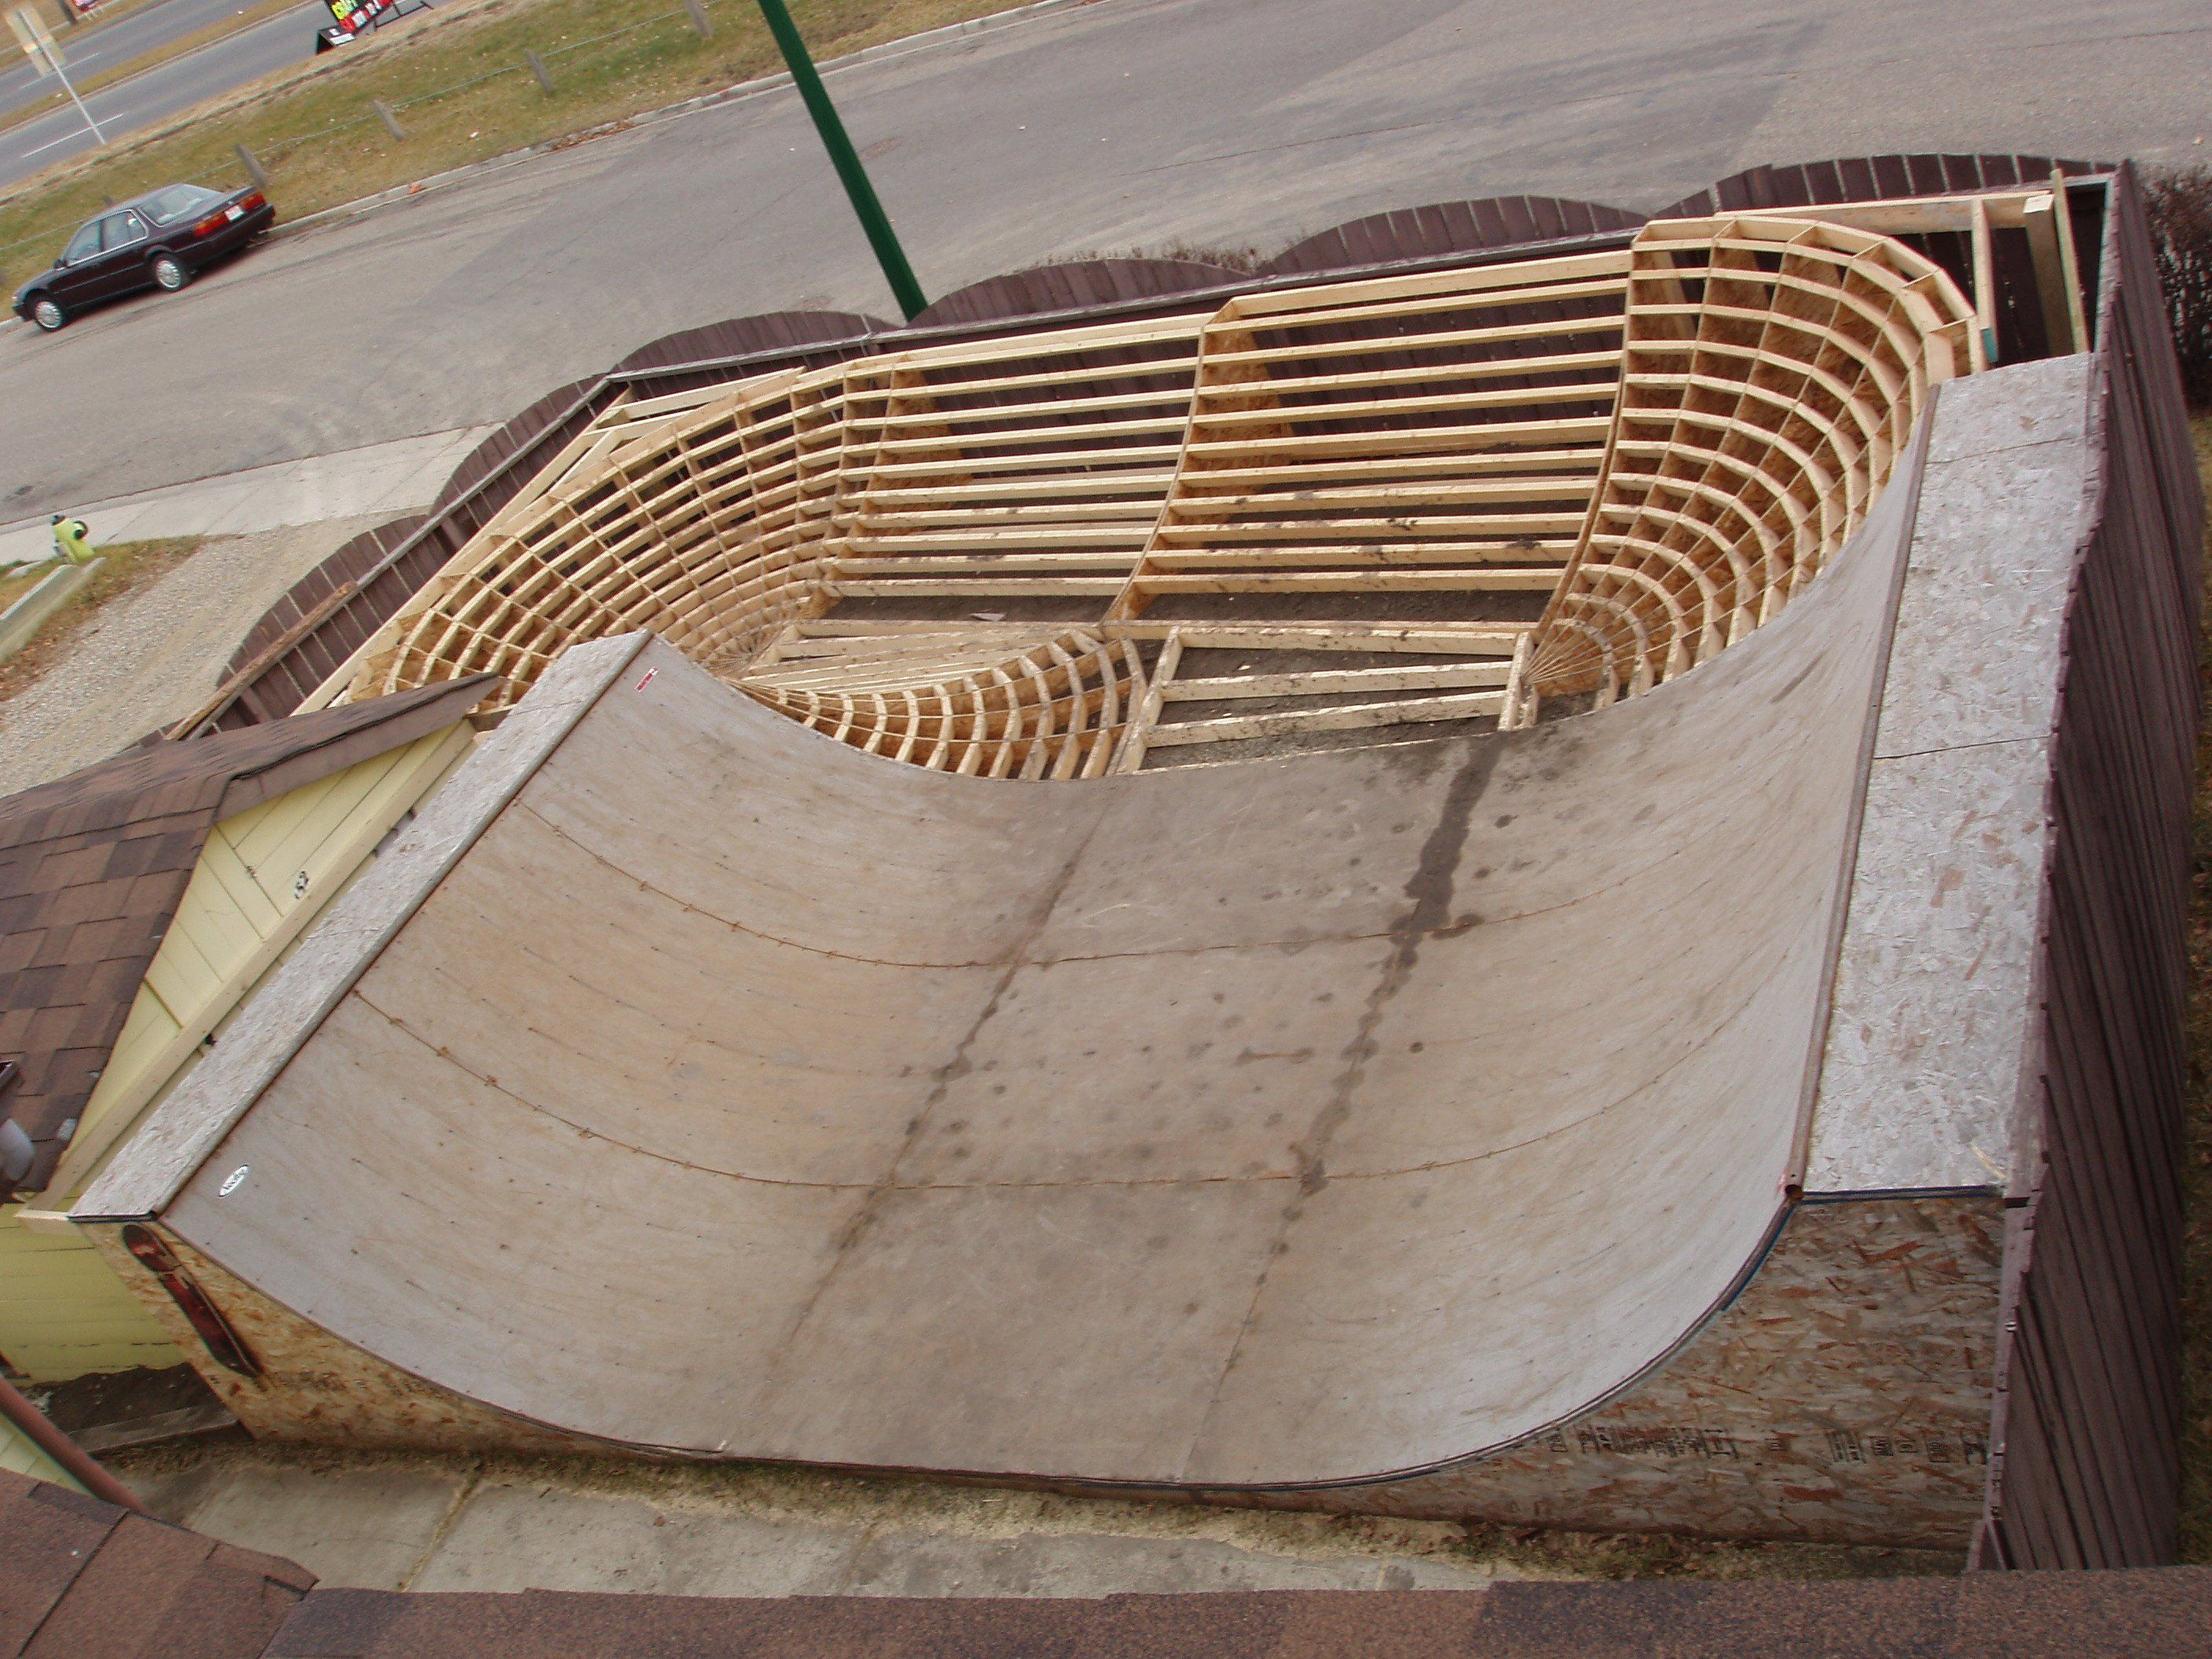 skateboard ramp blueprints - Google Search | Free Skateboard Ramp ...